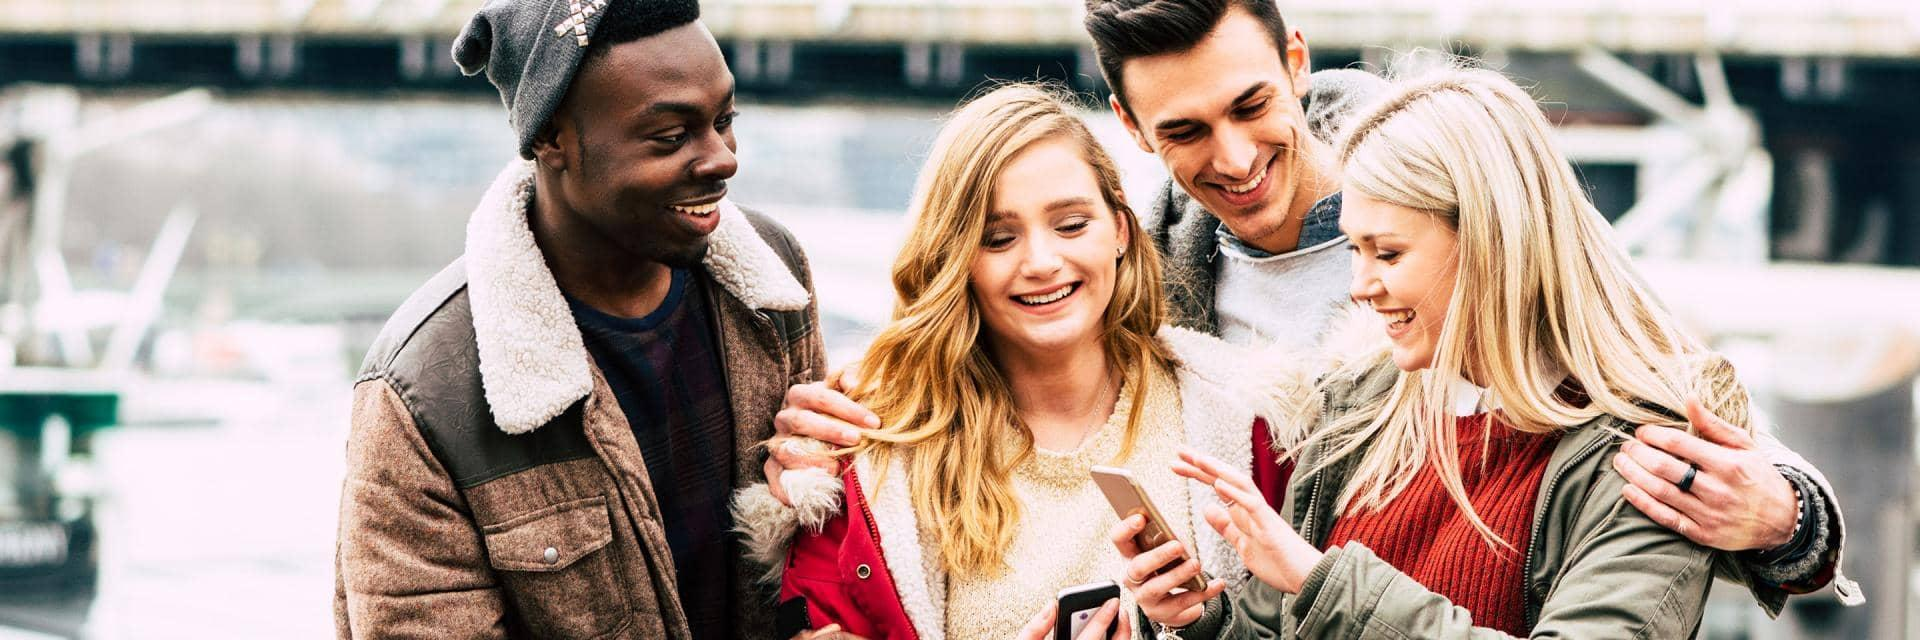 A group of young people wearing winter clothes laugh as they look at something on a mobile phone